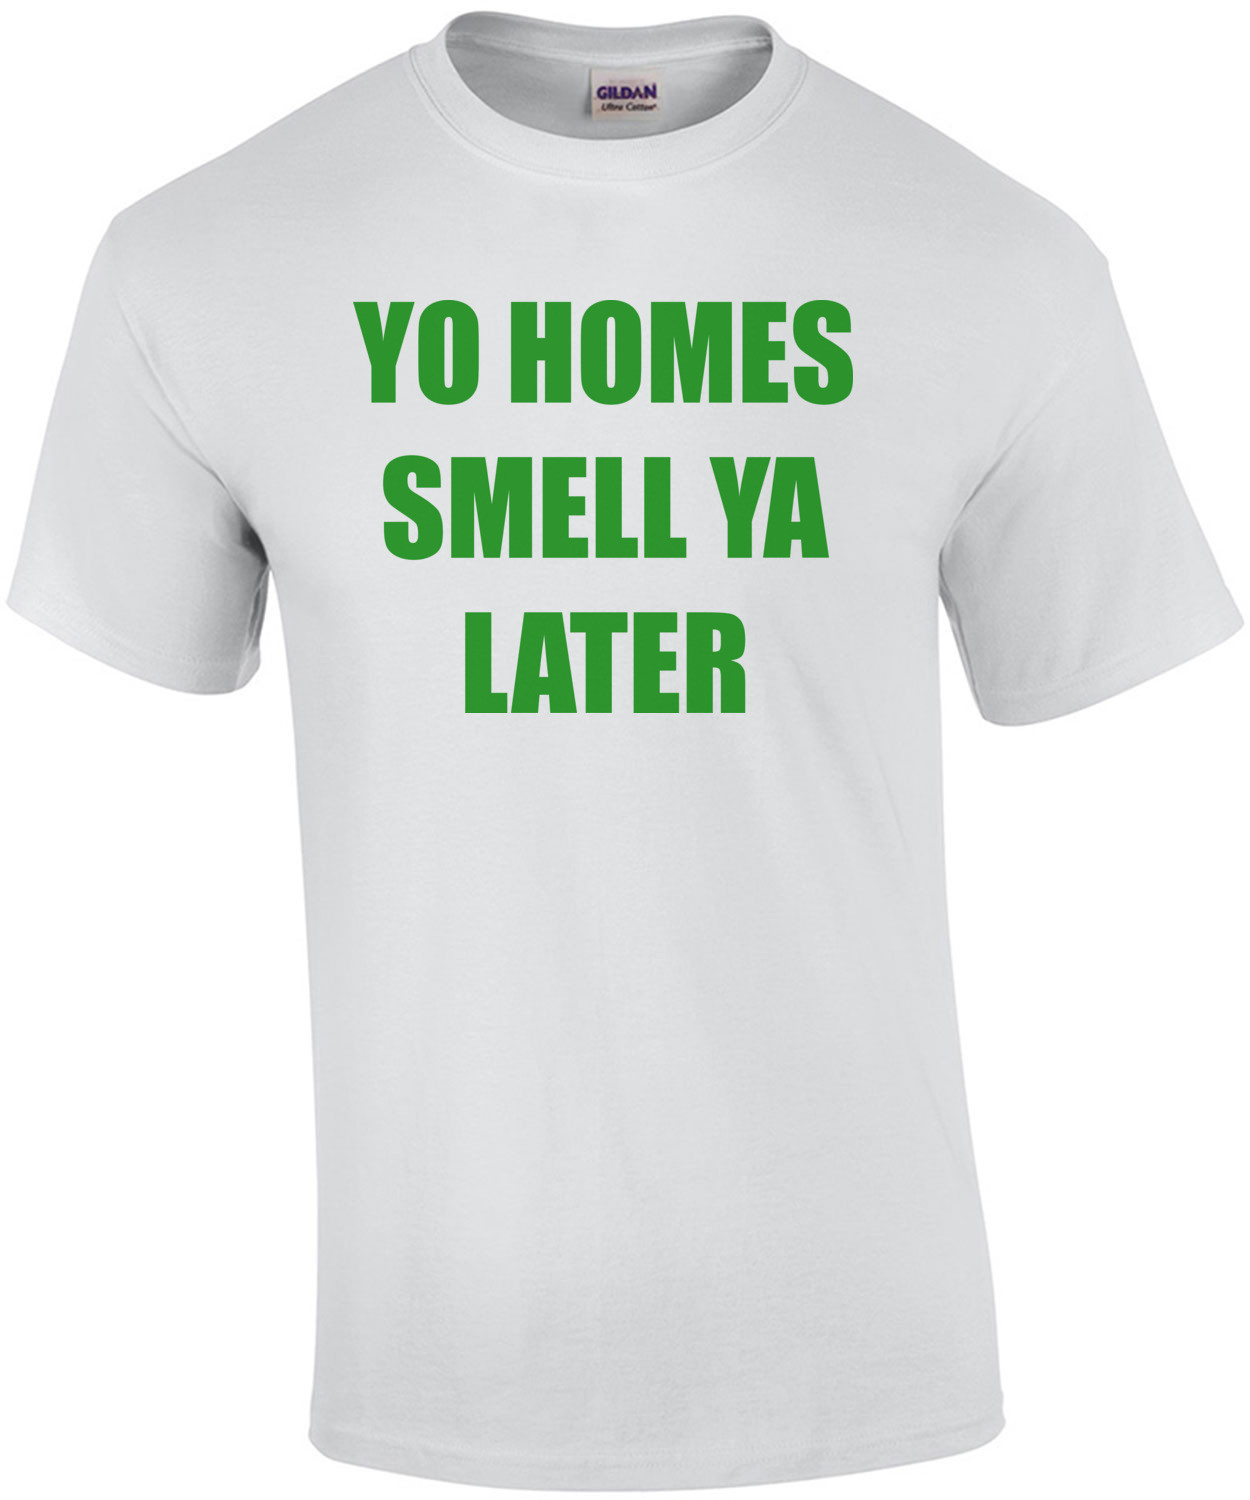 YO HOMES SMELL YA LATER Funny Fresh Prince of Bel Air Shirt